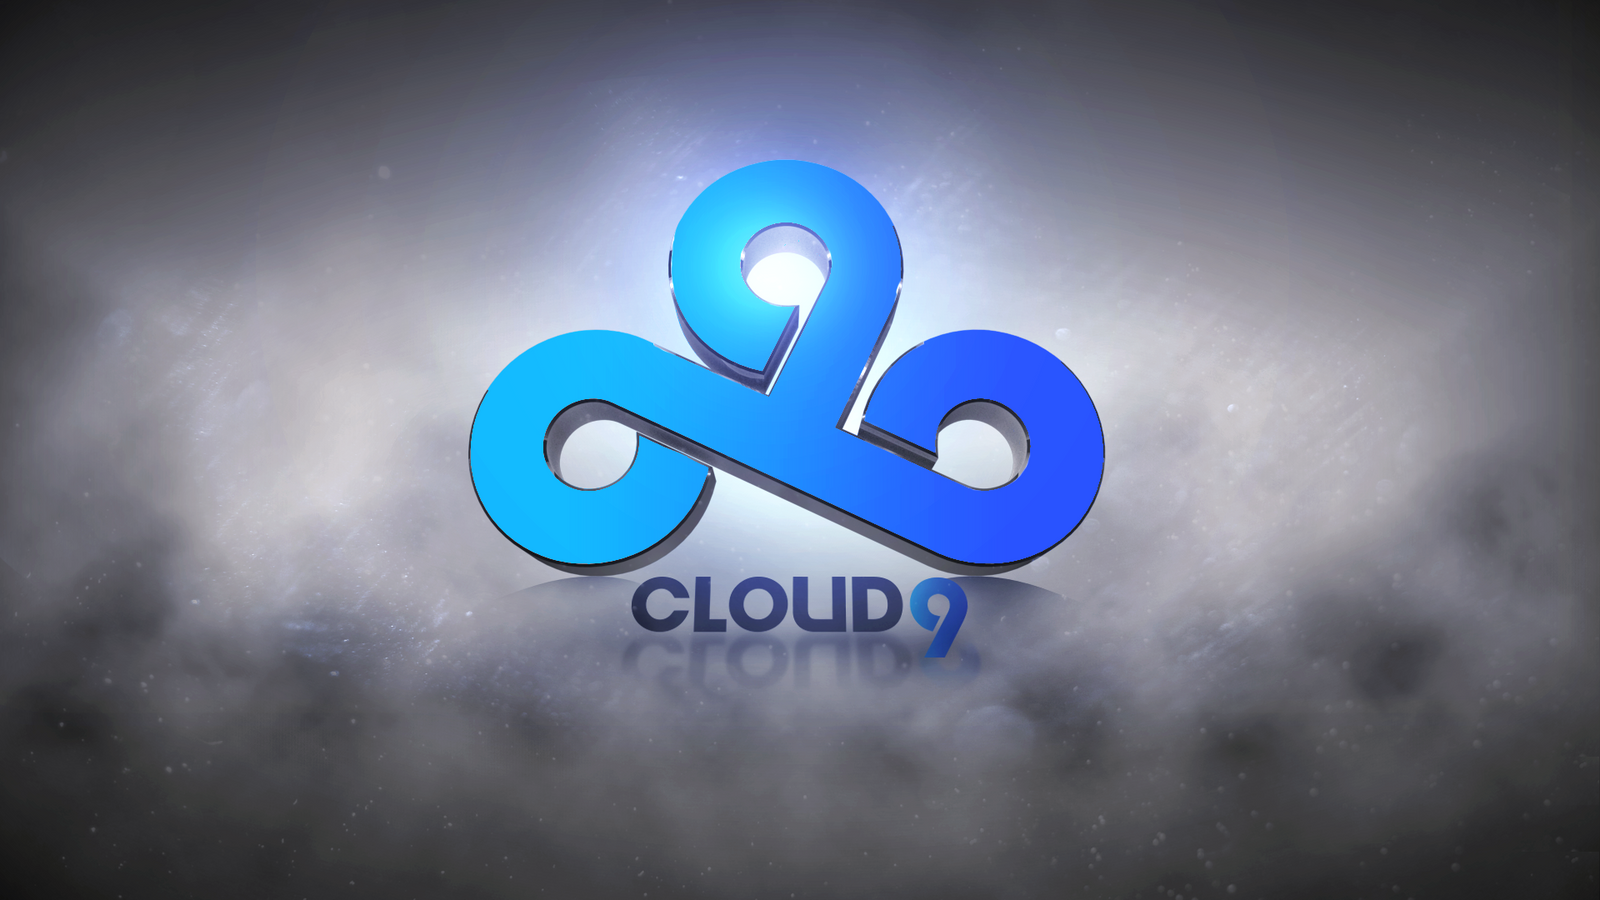 cloud9 wallpaper by kayee3n on deviantart